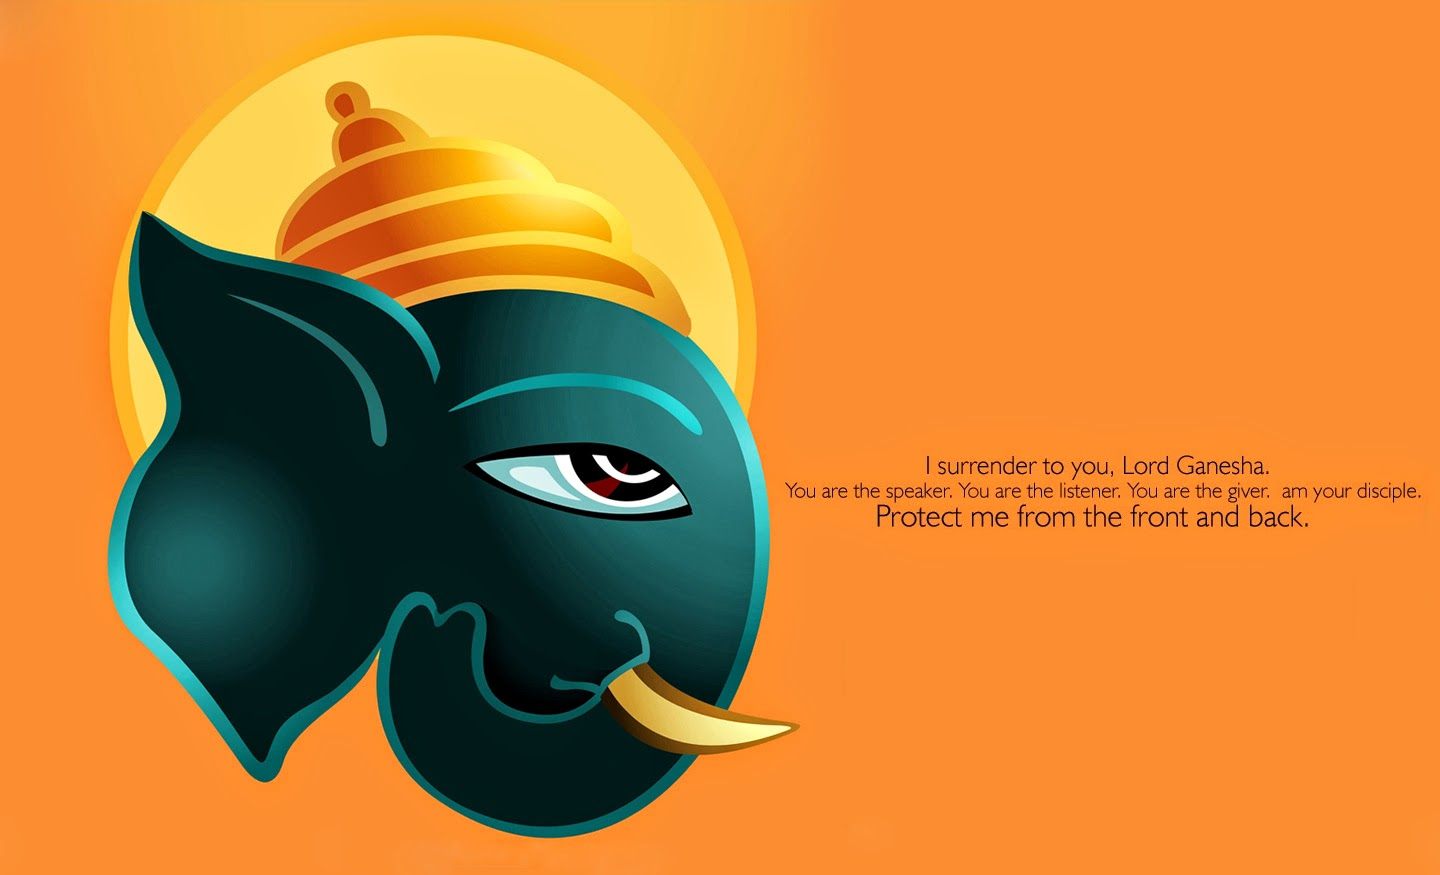 Ganesh Chaturthi Wallpapers For Mobile & PC Free Download